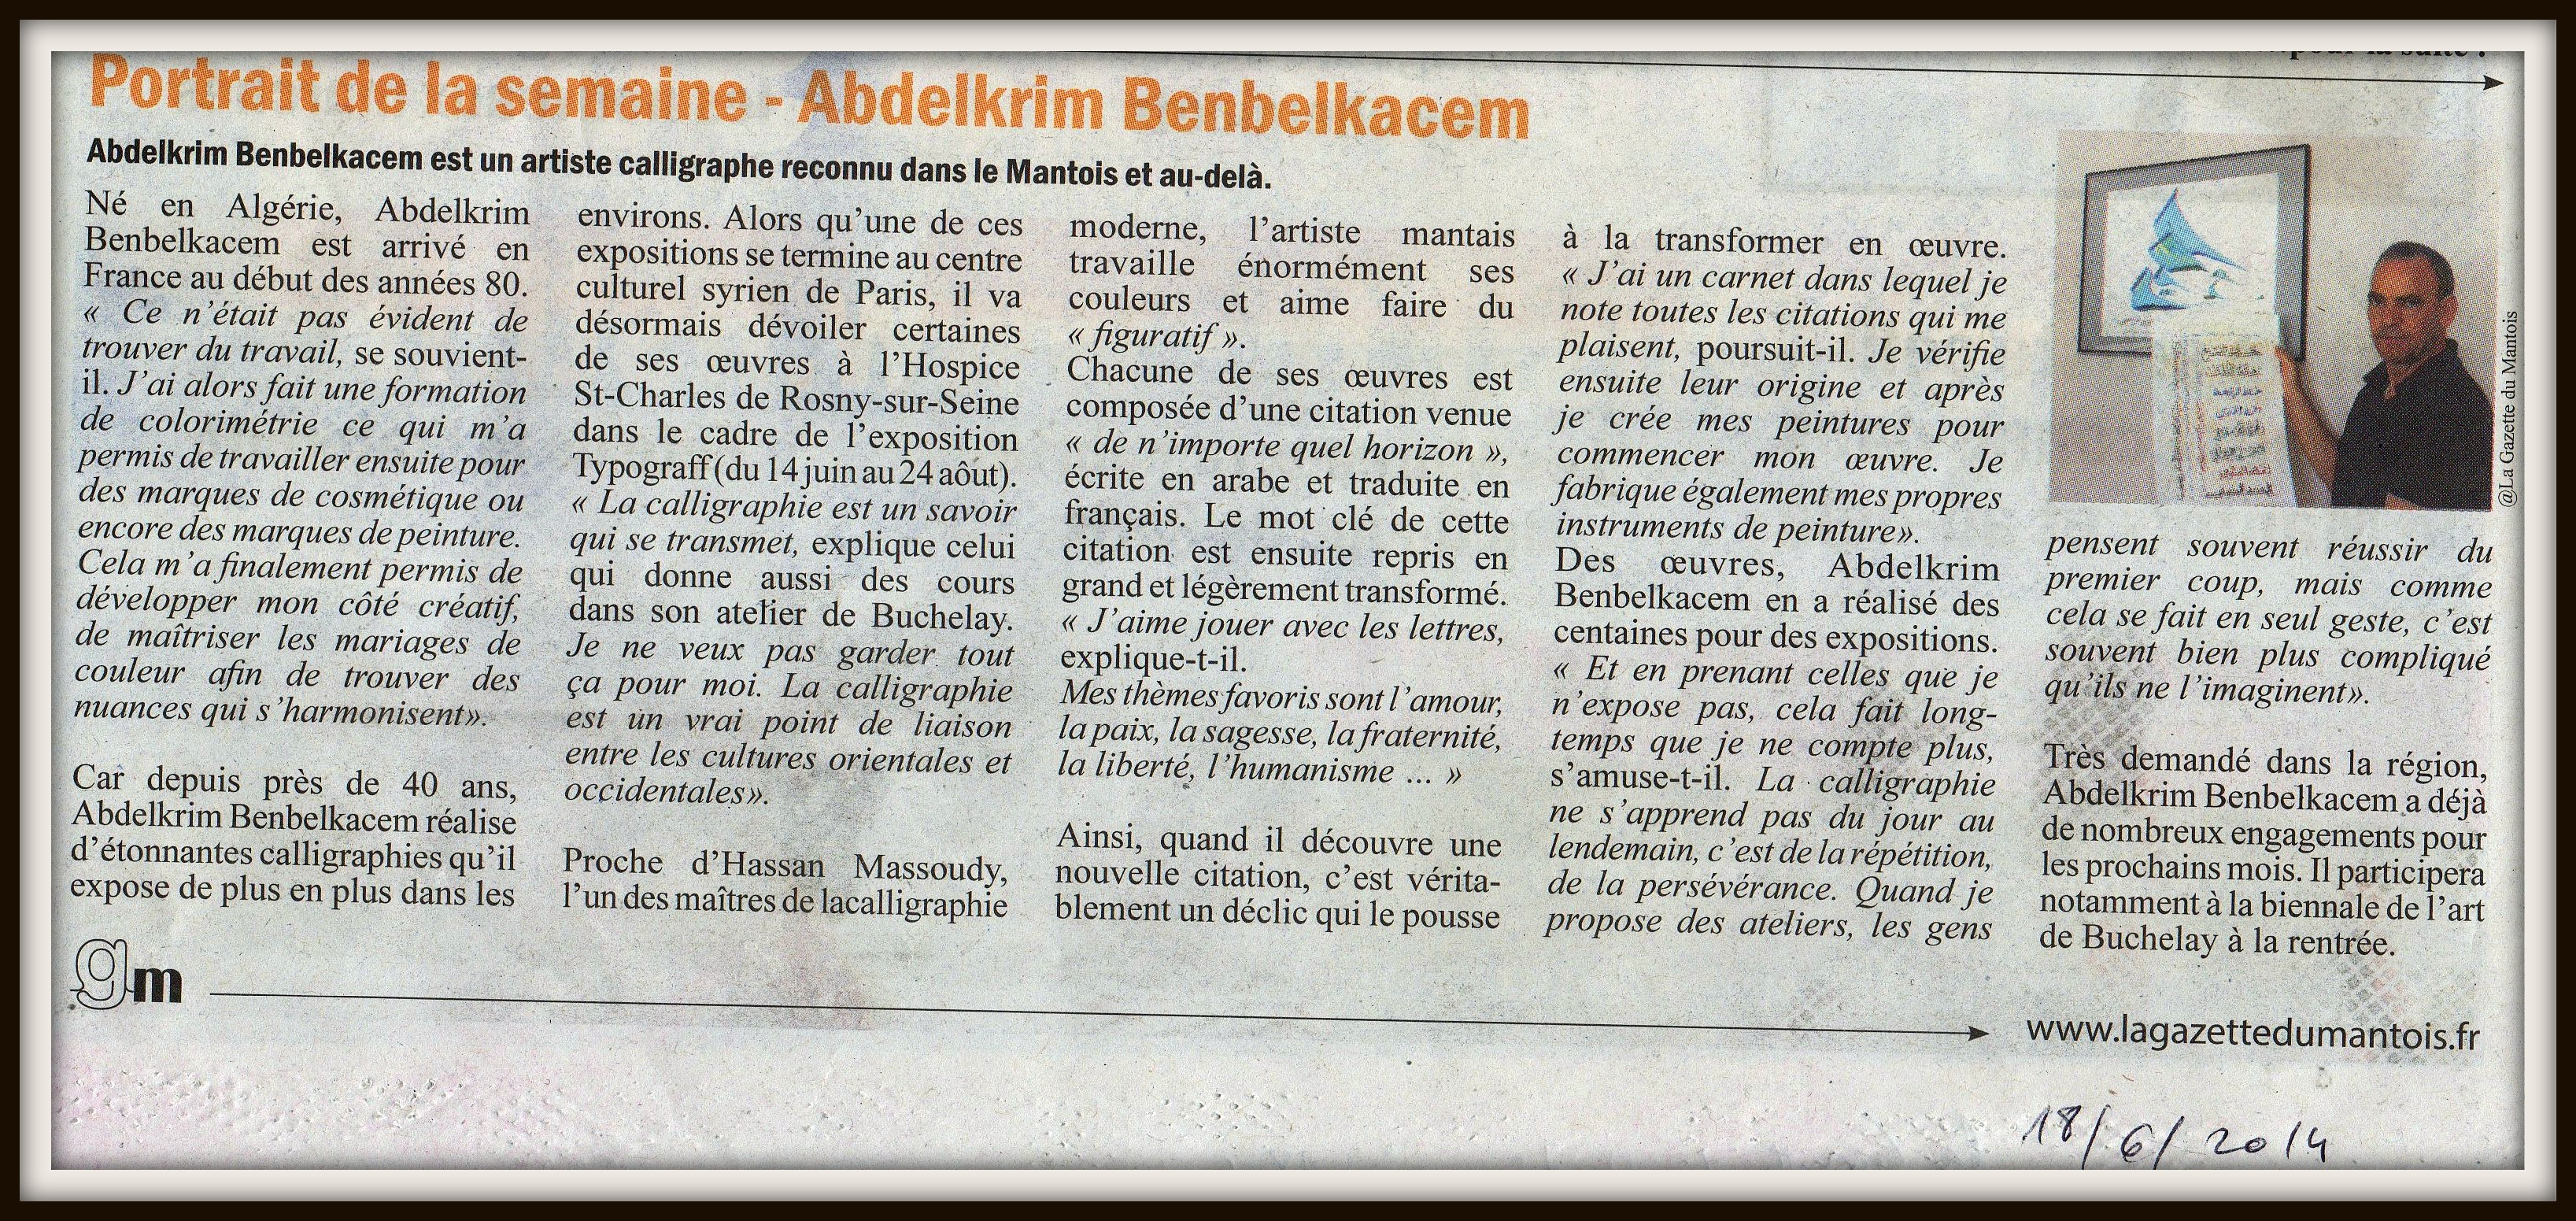 la gazette du mantois 18.6.2014.jpg